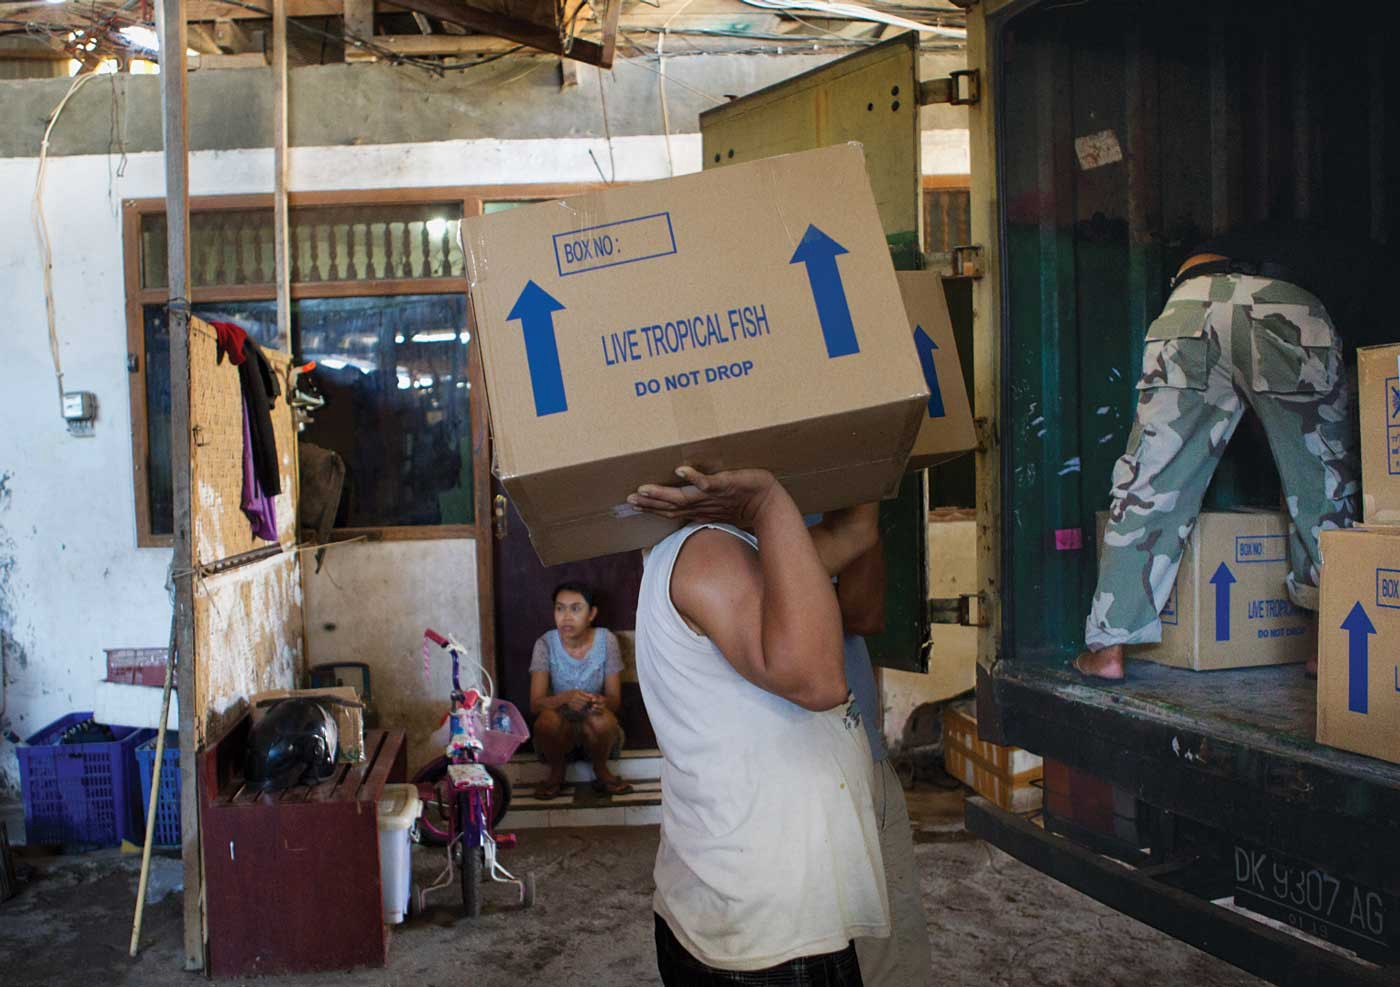 A man carries two boxes, one on each shoulder, supported by his hand, which read 'Live Tropical Fish. Do Not Drop.' He approaches a truck where someone is stacking identical boxes. In the background, a woman sits on the step of a home.